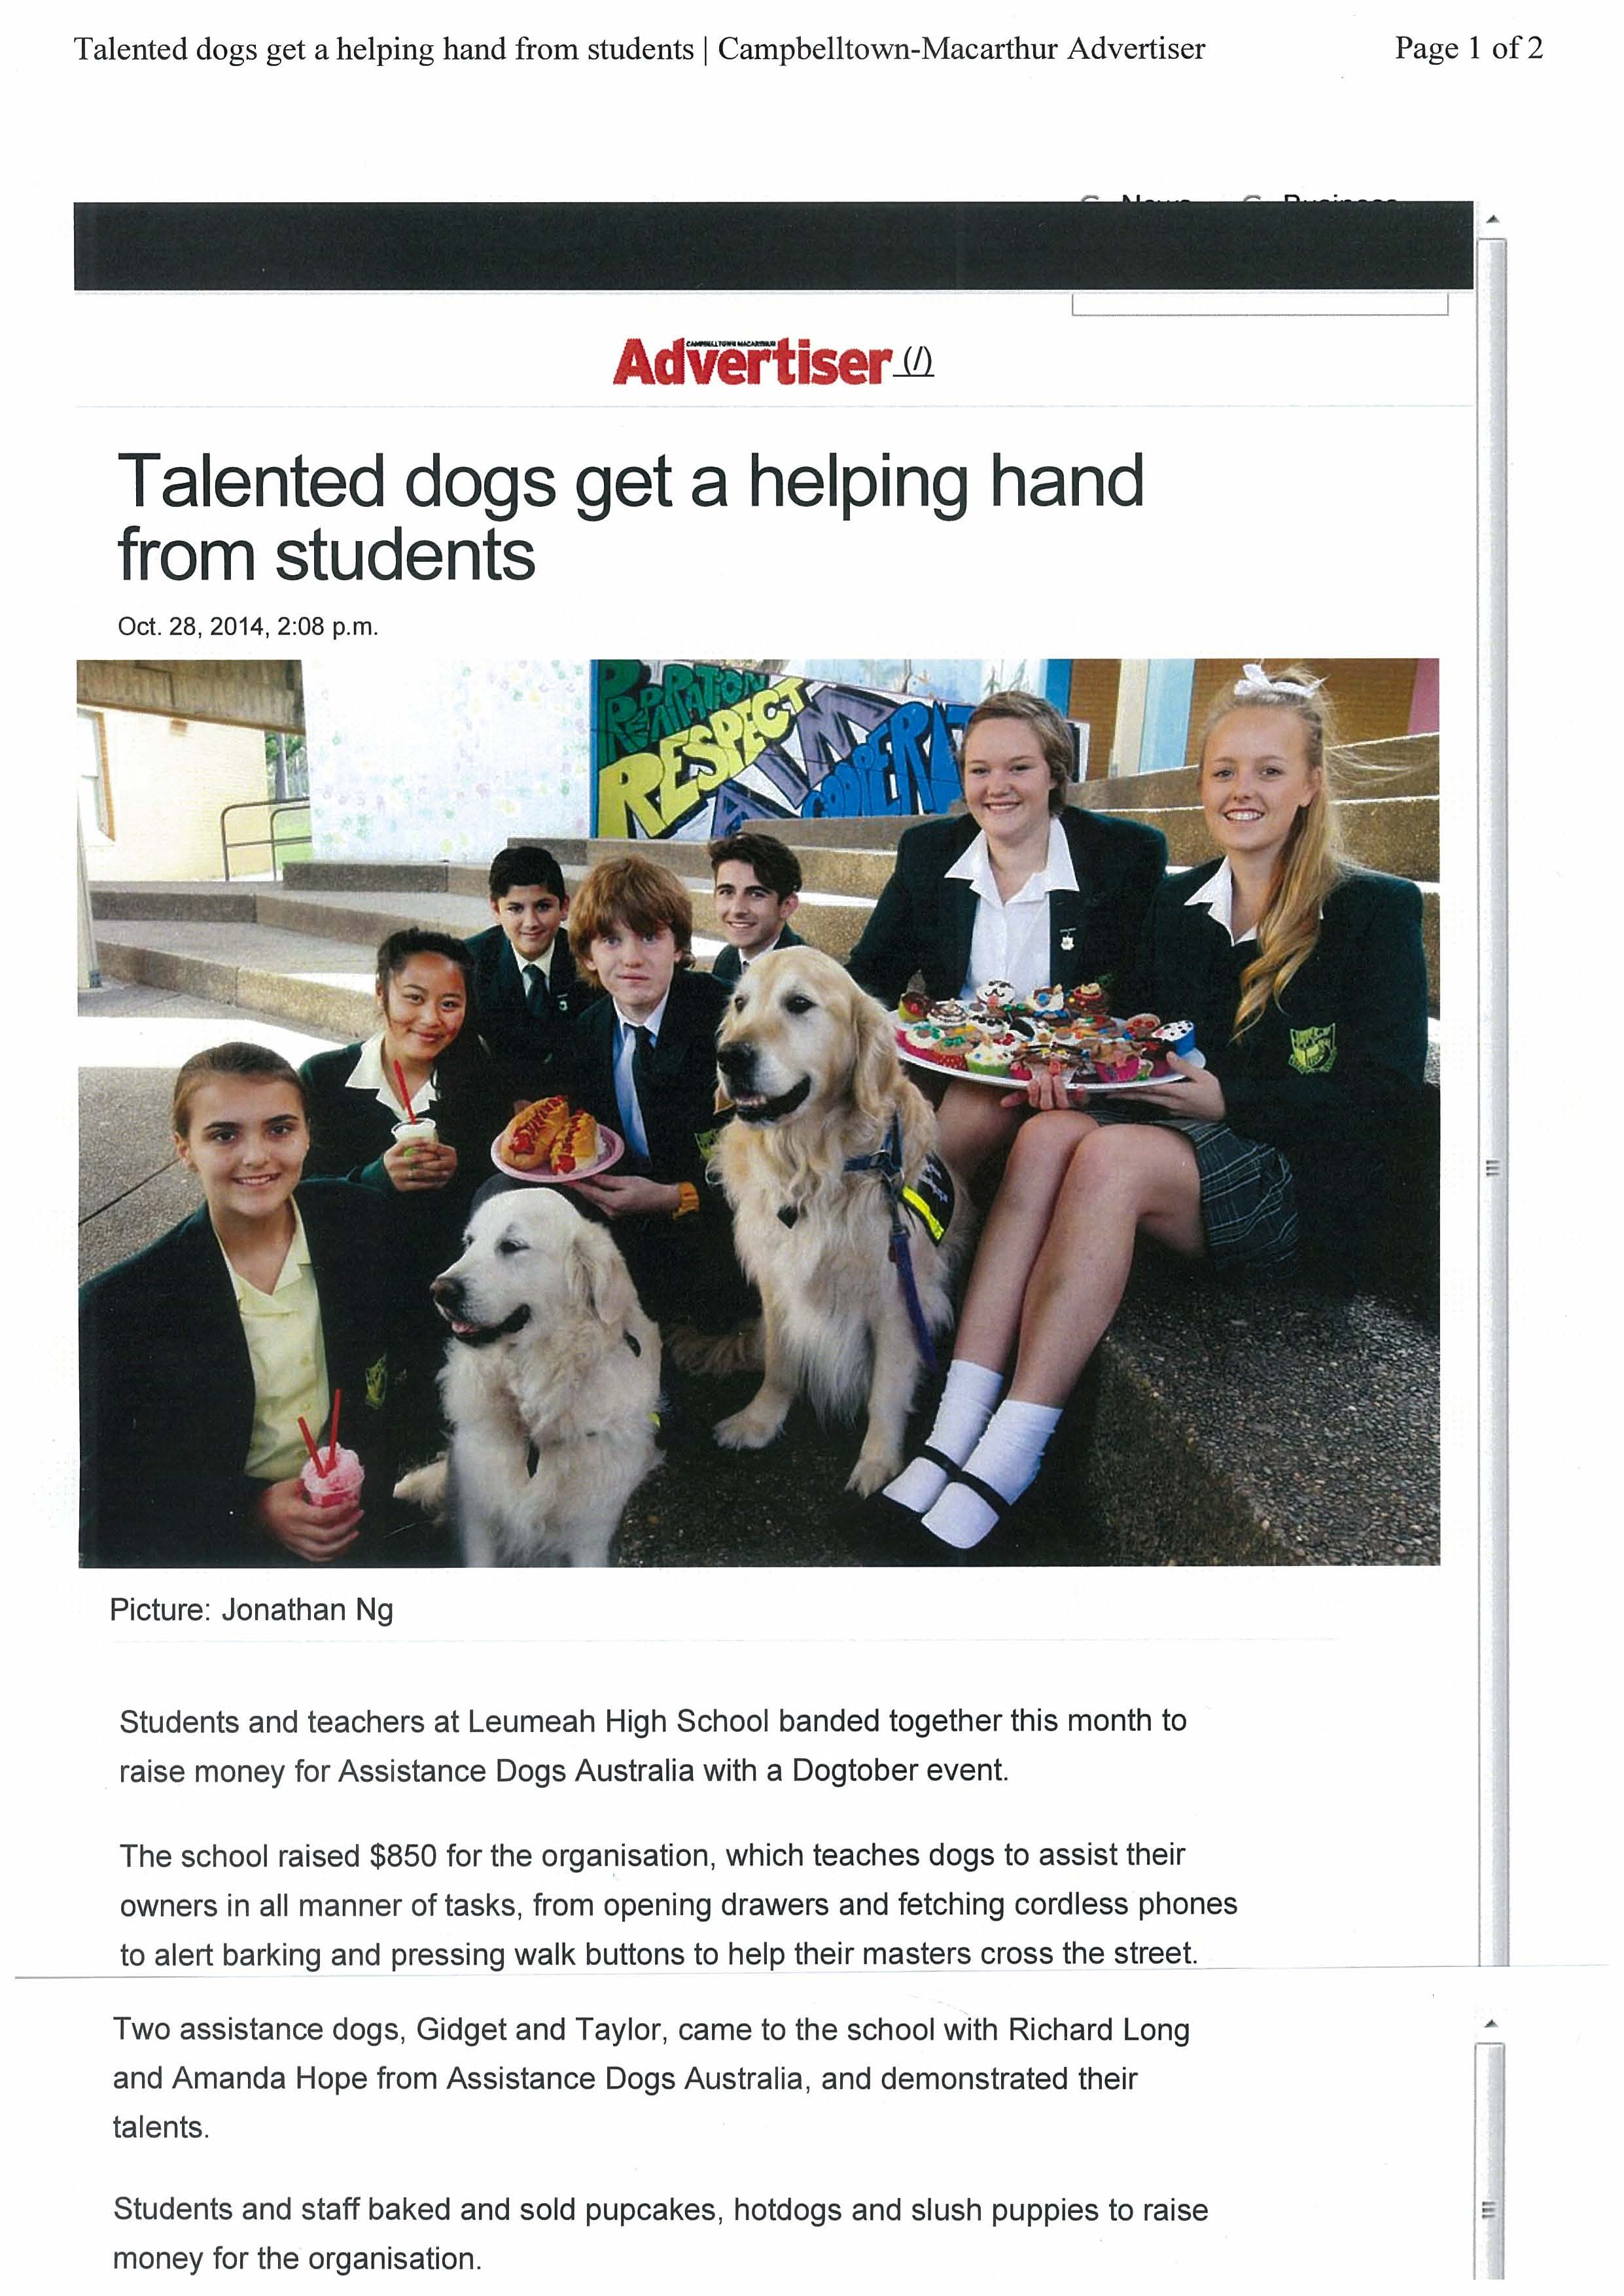 Students fundraised for Assistance Dogs Australia.